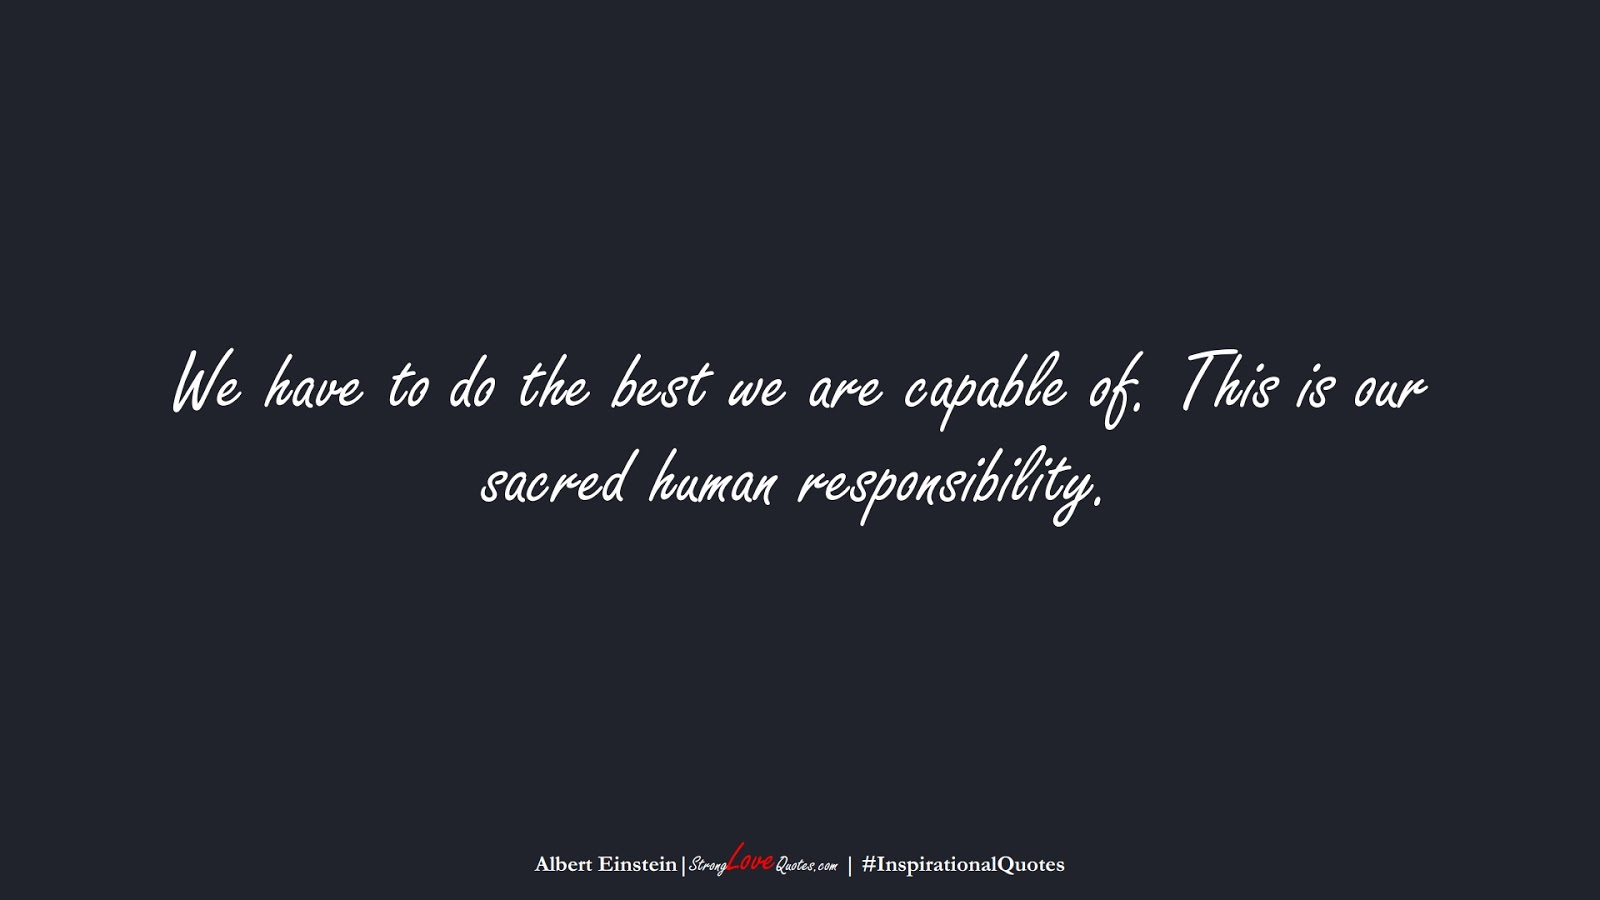 We have to do the best we are capable of. This is our sacred human responsibility. (Albert Einstein);  #InspirationalQuotes